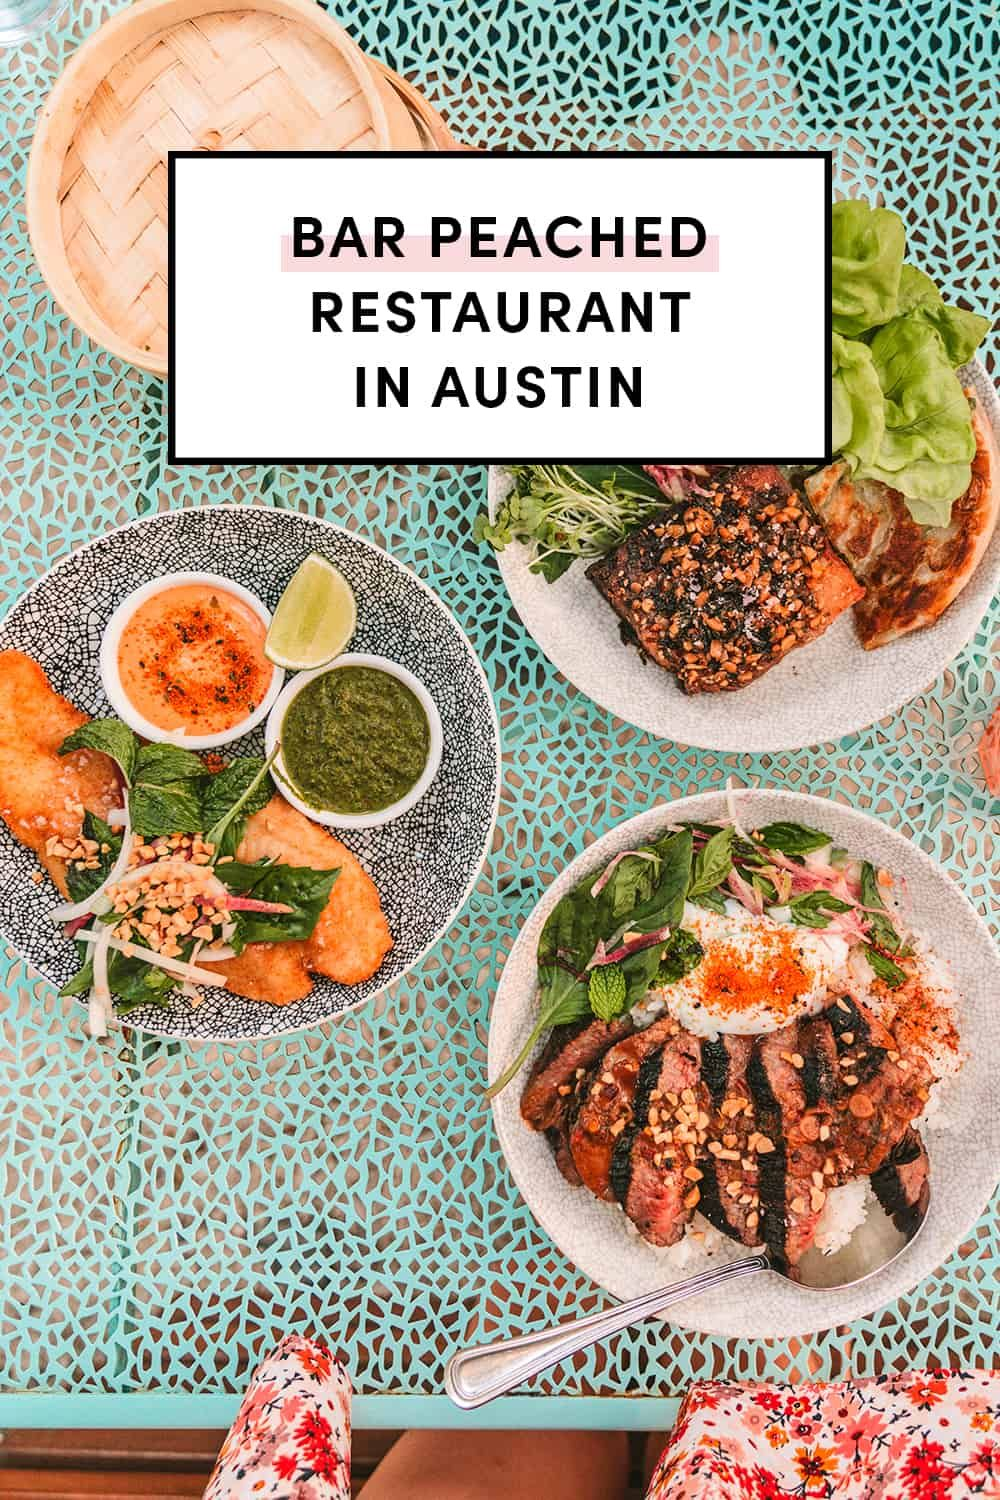 Review Of Bar Peached In Austin With Photos A Taste Of Koko In 2020 Braised Pork Shoulder Tasting Best French Fries